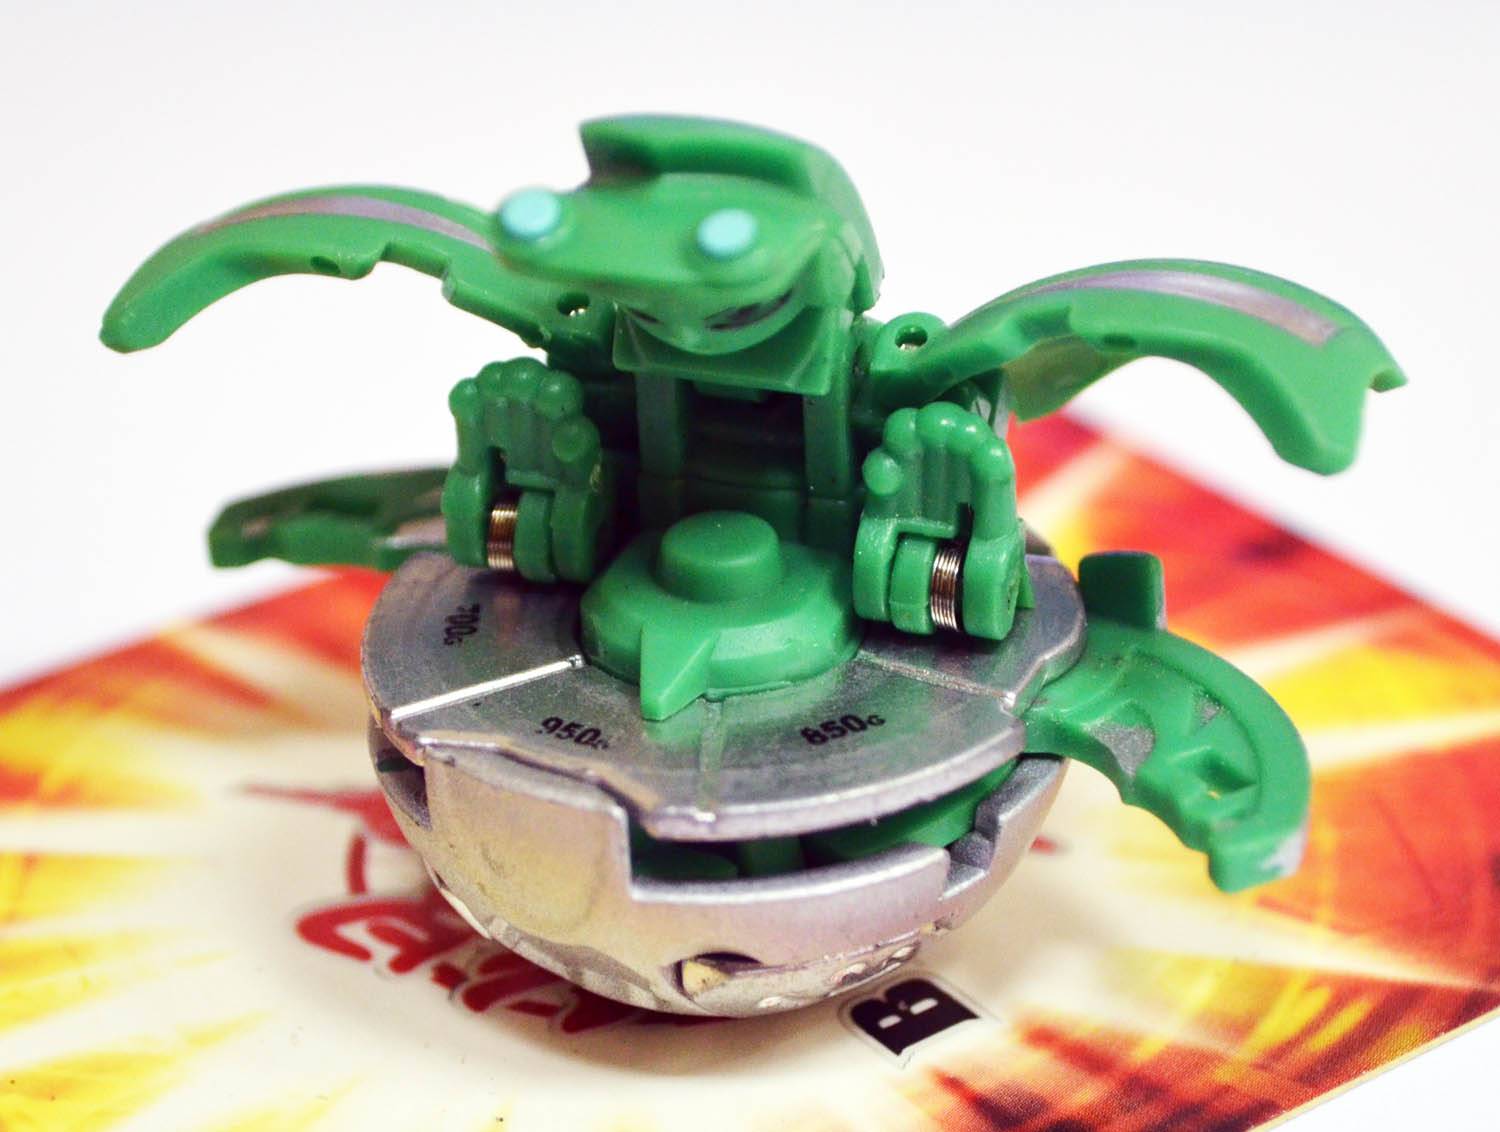 Bakugan Mechtanium Surge Heavy Metal MUTANT ELFIN (750-950G)